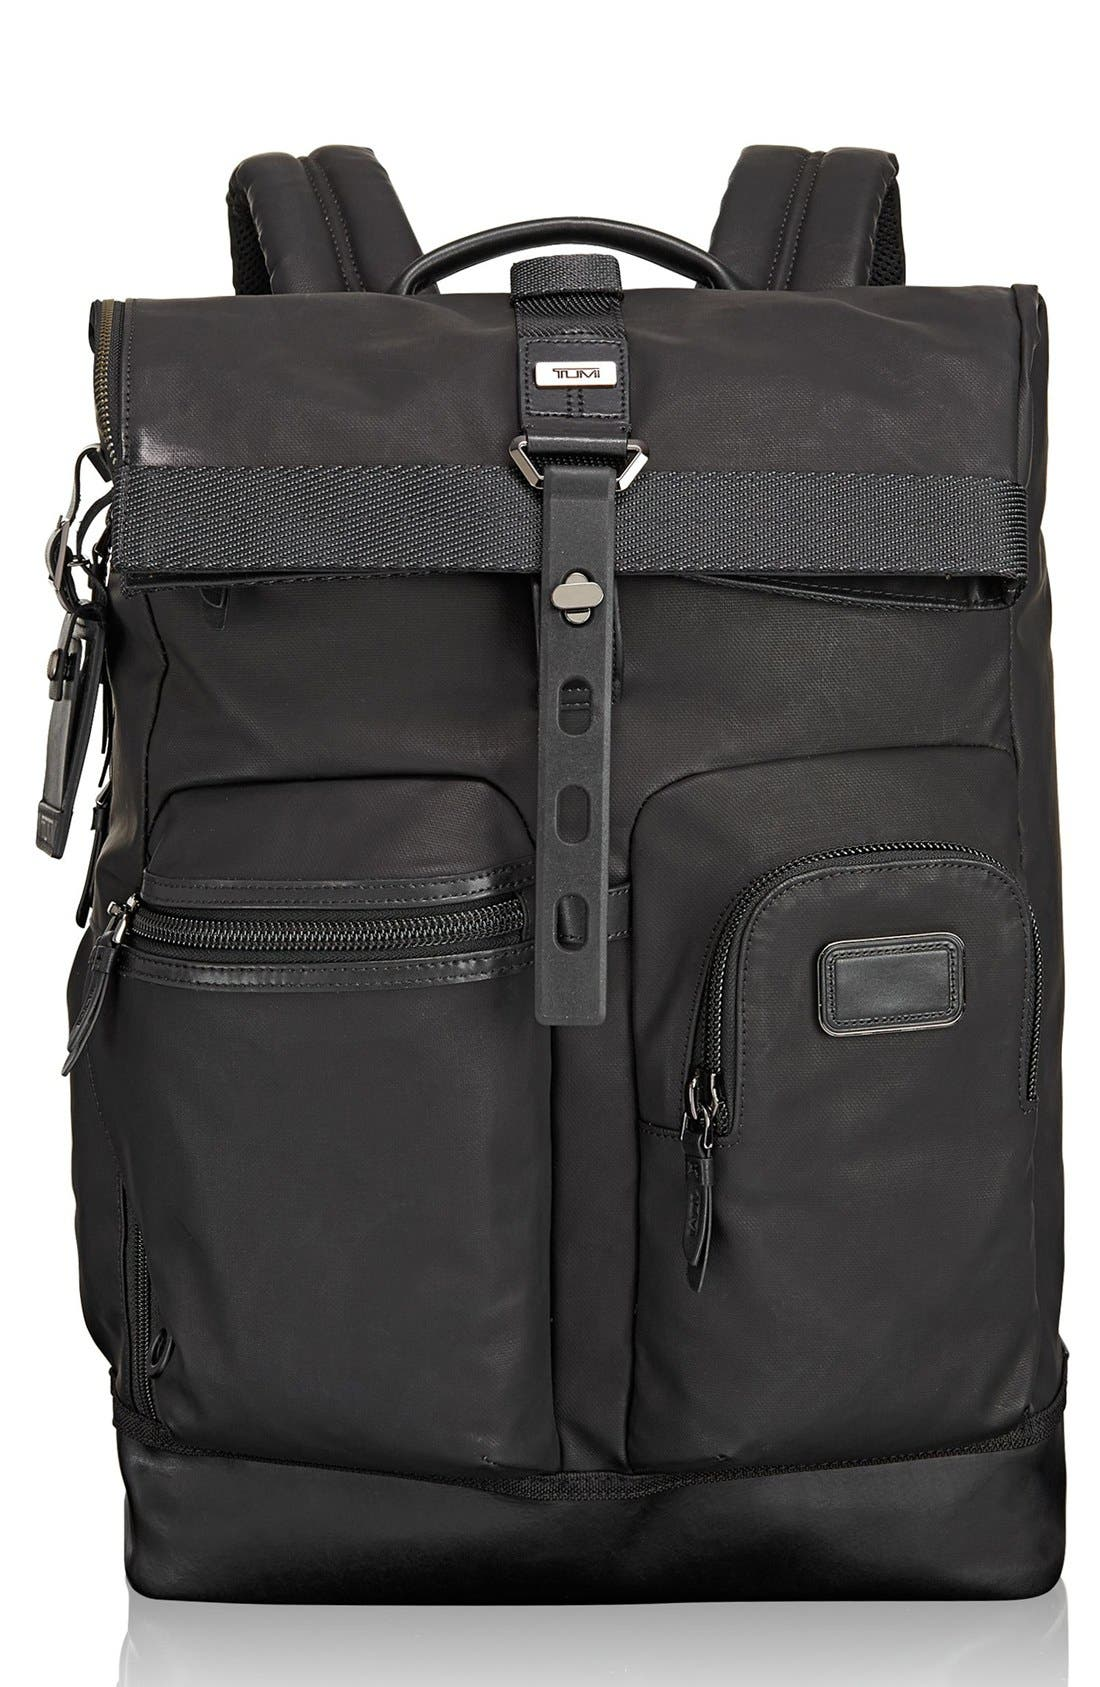 TUMI 'Alpha Bravo - Luke' Roll Top Backpack, Main, color, 001